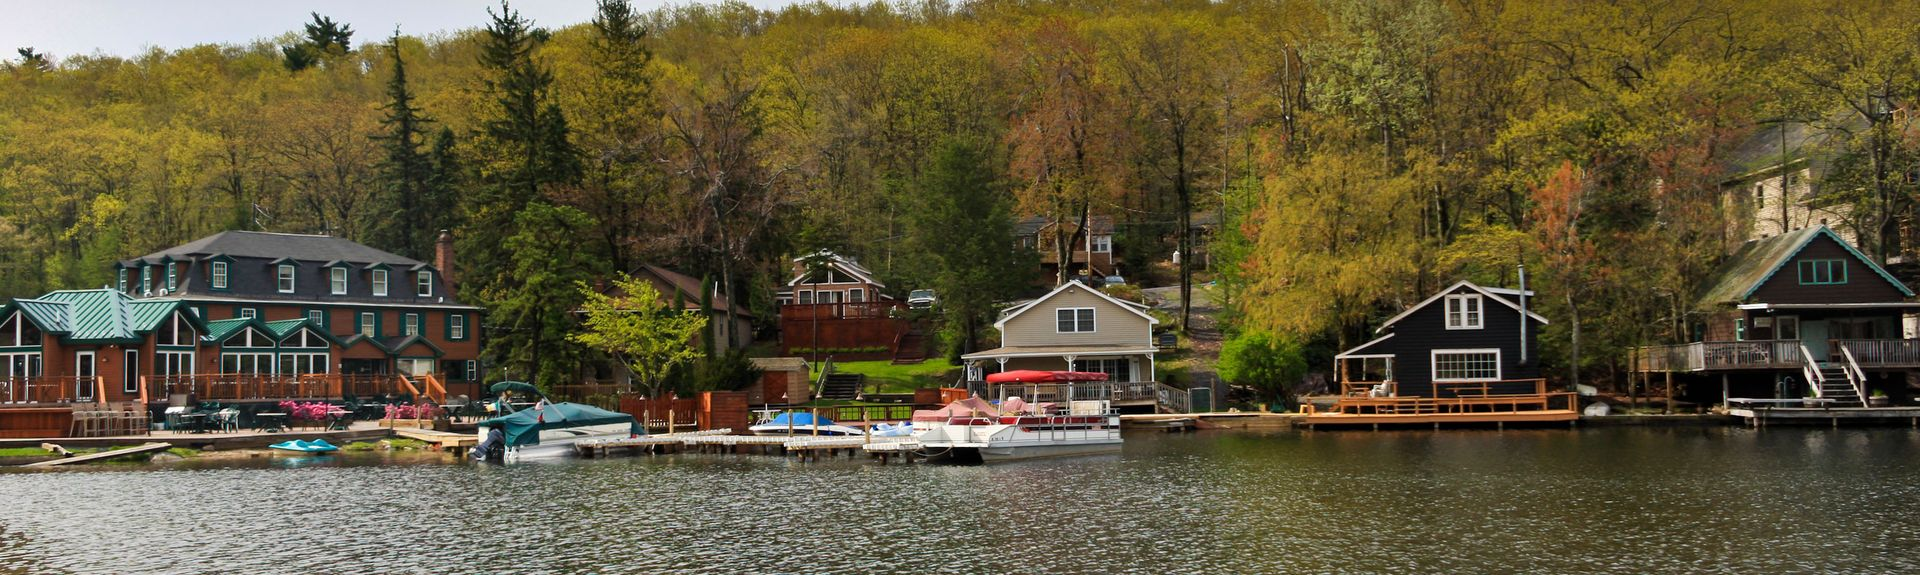 Vrbo 174 Lake Harmony Pa Vacation Rentals Reviews Amp Booking